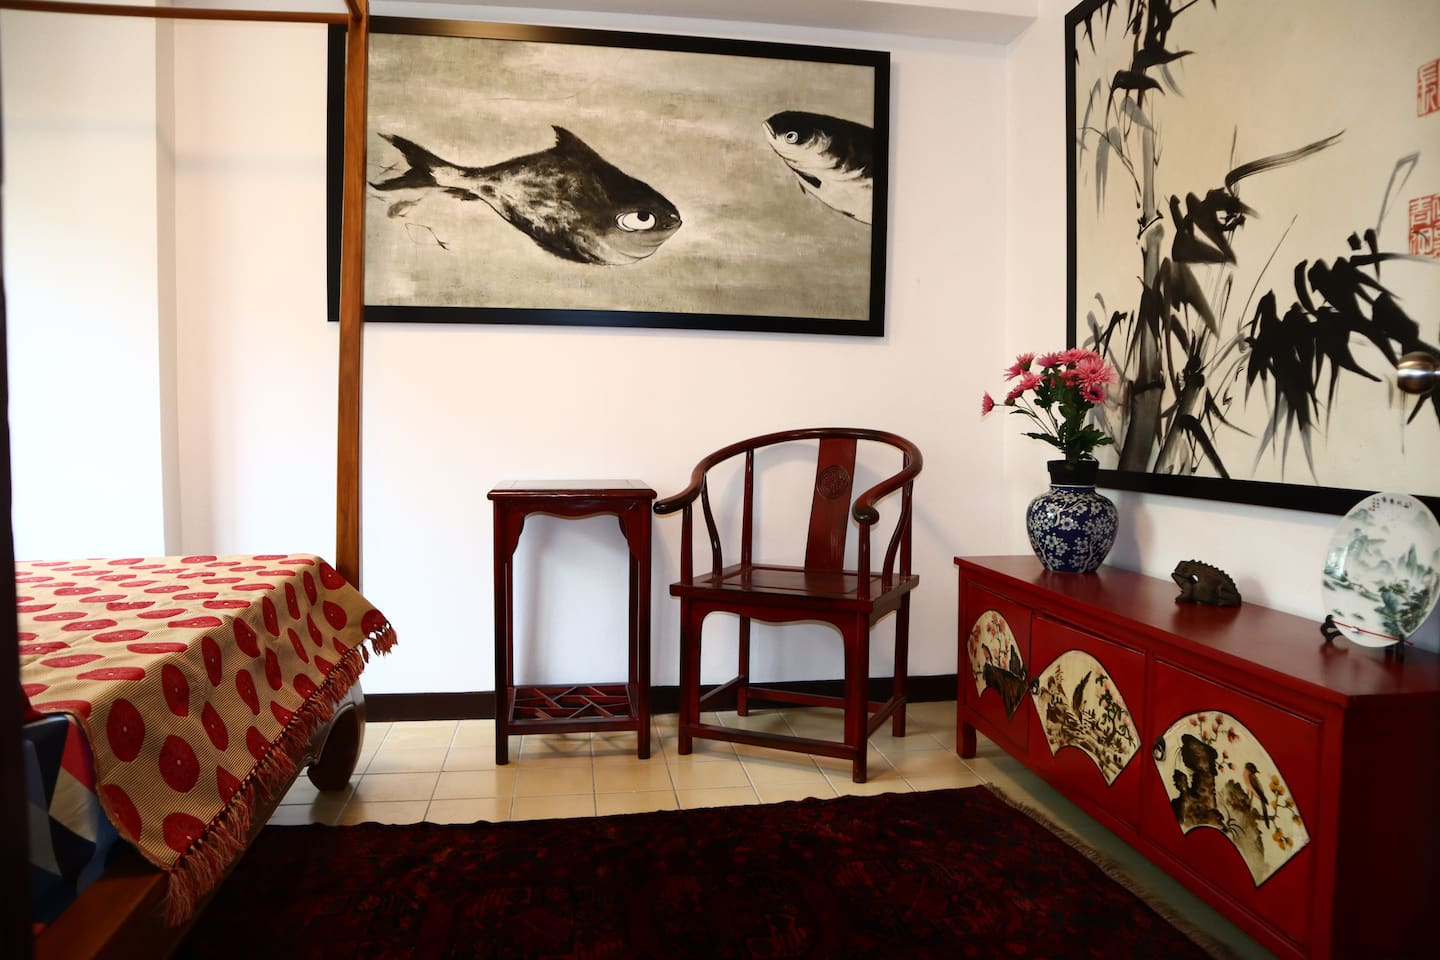 Design of this condo was inspired by  Wong Kar-wai movie The hand (eros) so motive is very traditional oriental design with vintage furniture and oil paintings.